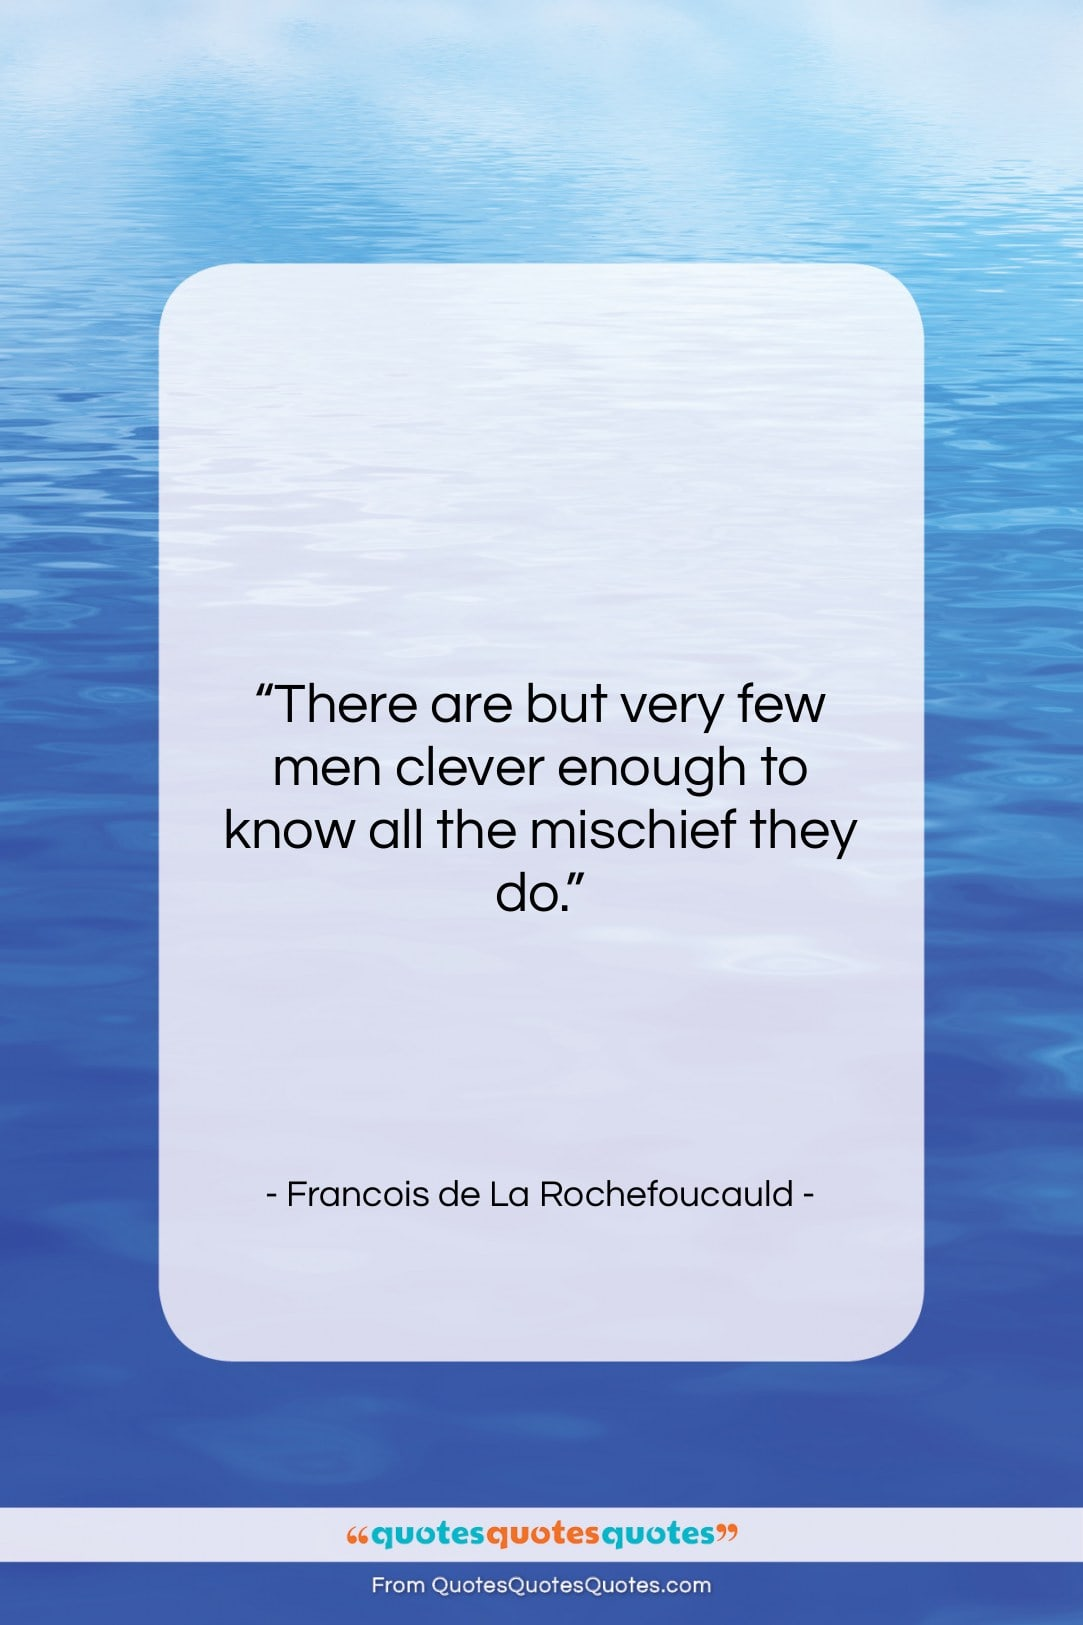 """Francois de La Rochefoucauld quote: """"There are but very few men clever…""""- at QuotesQuotesQuotes.com"""